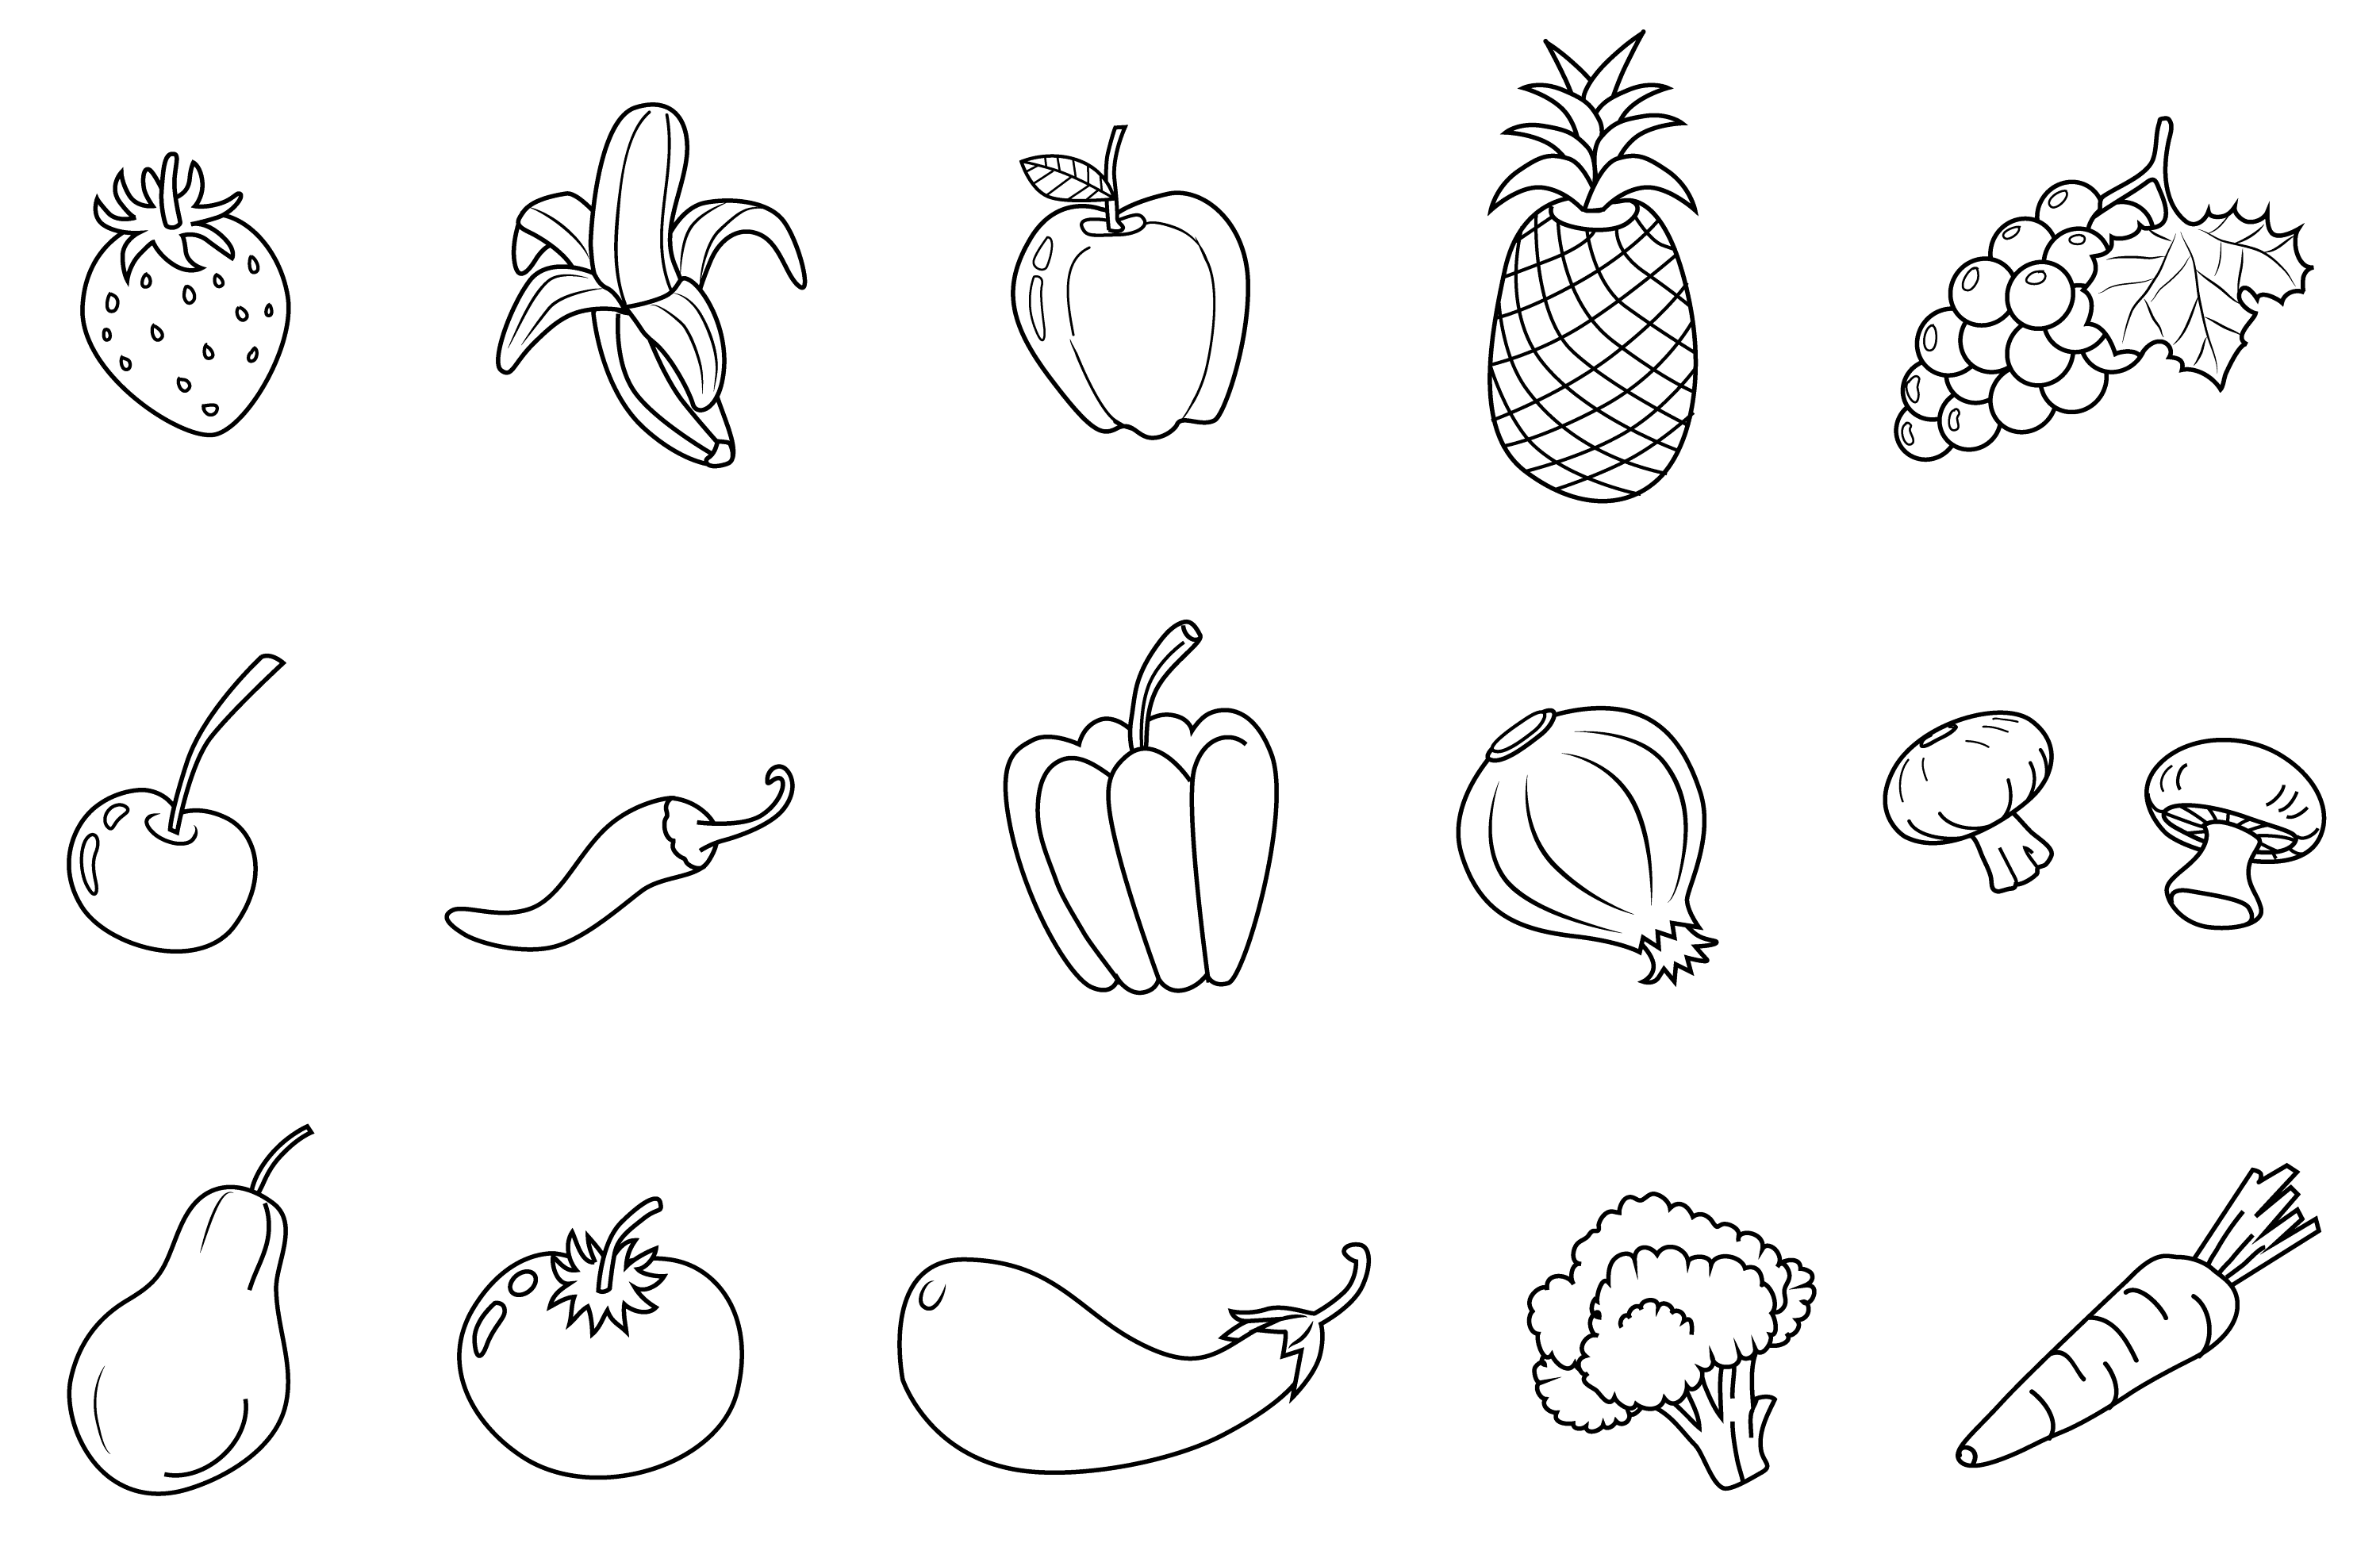 coloring fruits and vegetables images free coloring pages of vegetable gardens fruits vegetables coloring images and